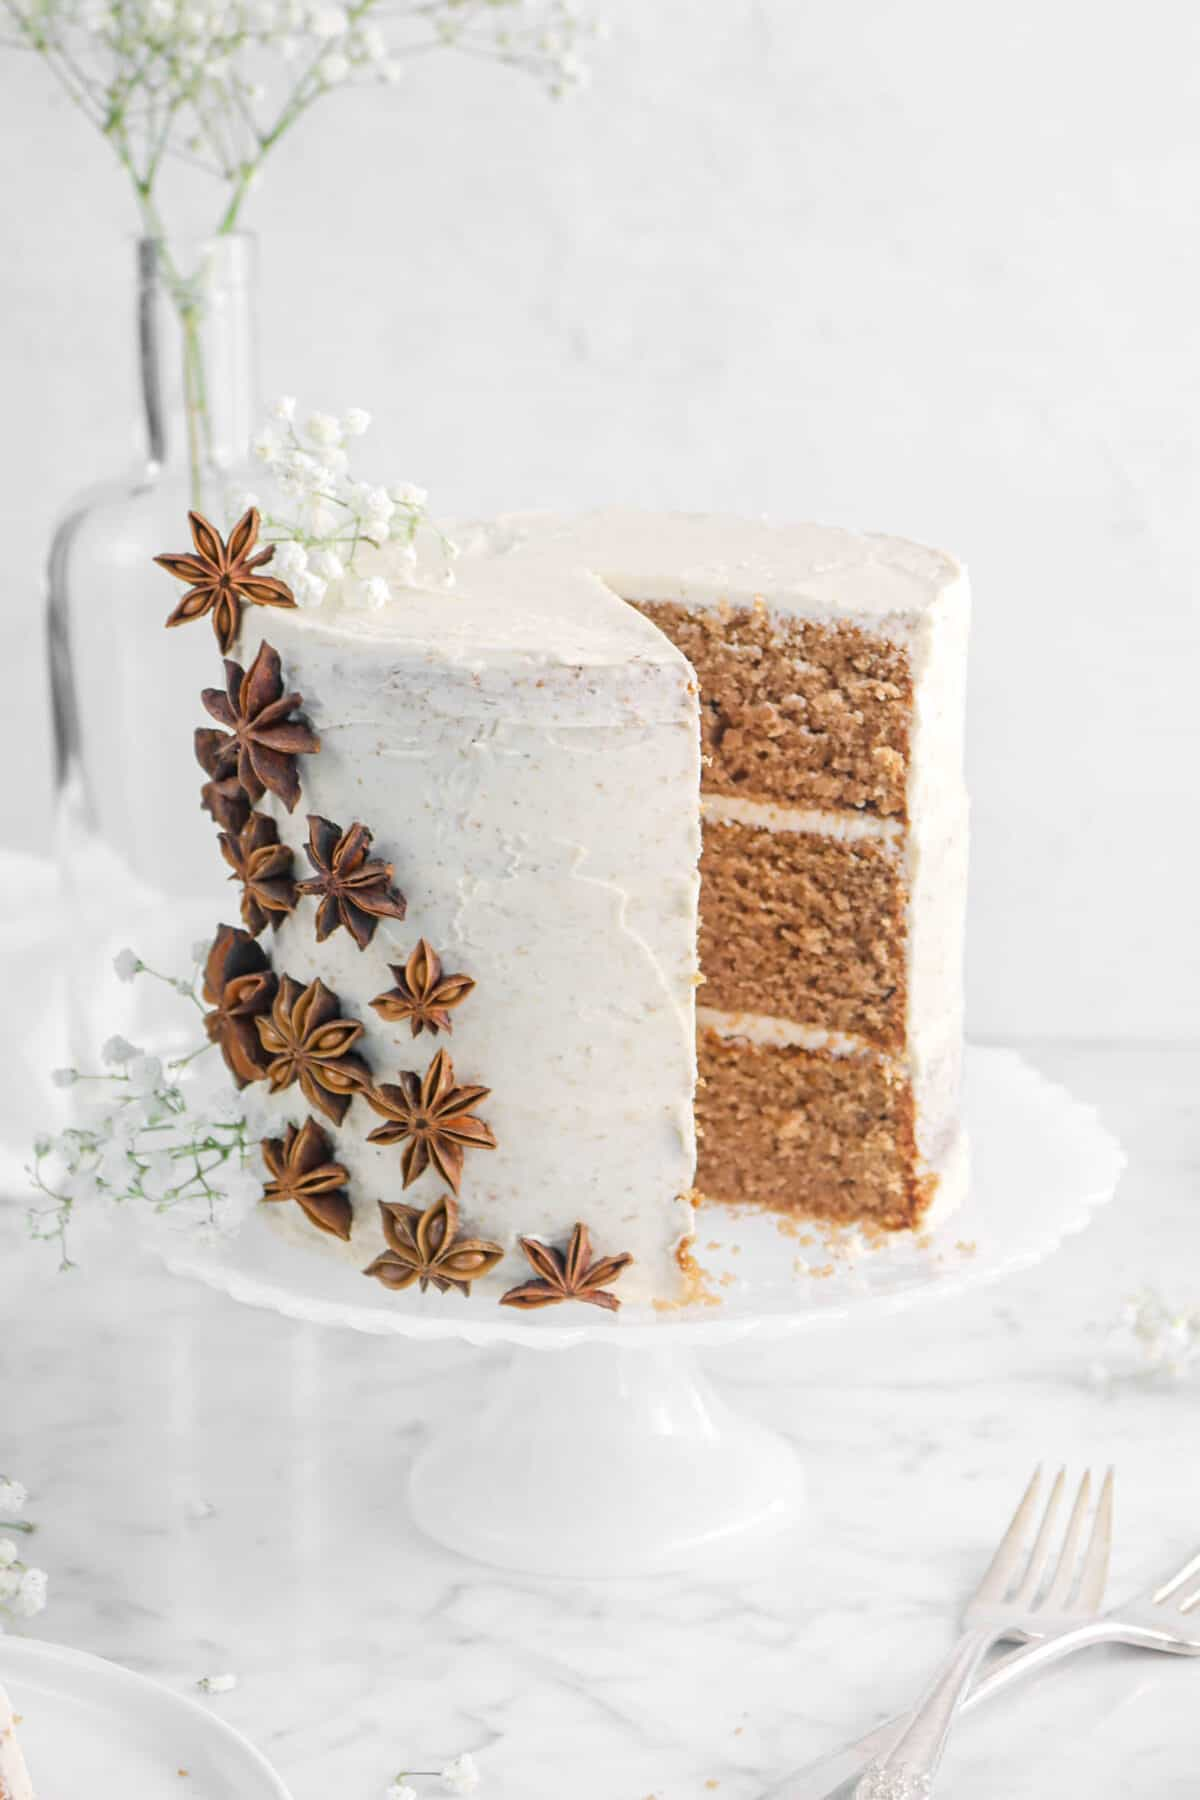 pumpkin spice cake on a white cake plate with a slice taken out of it